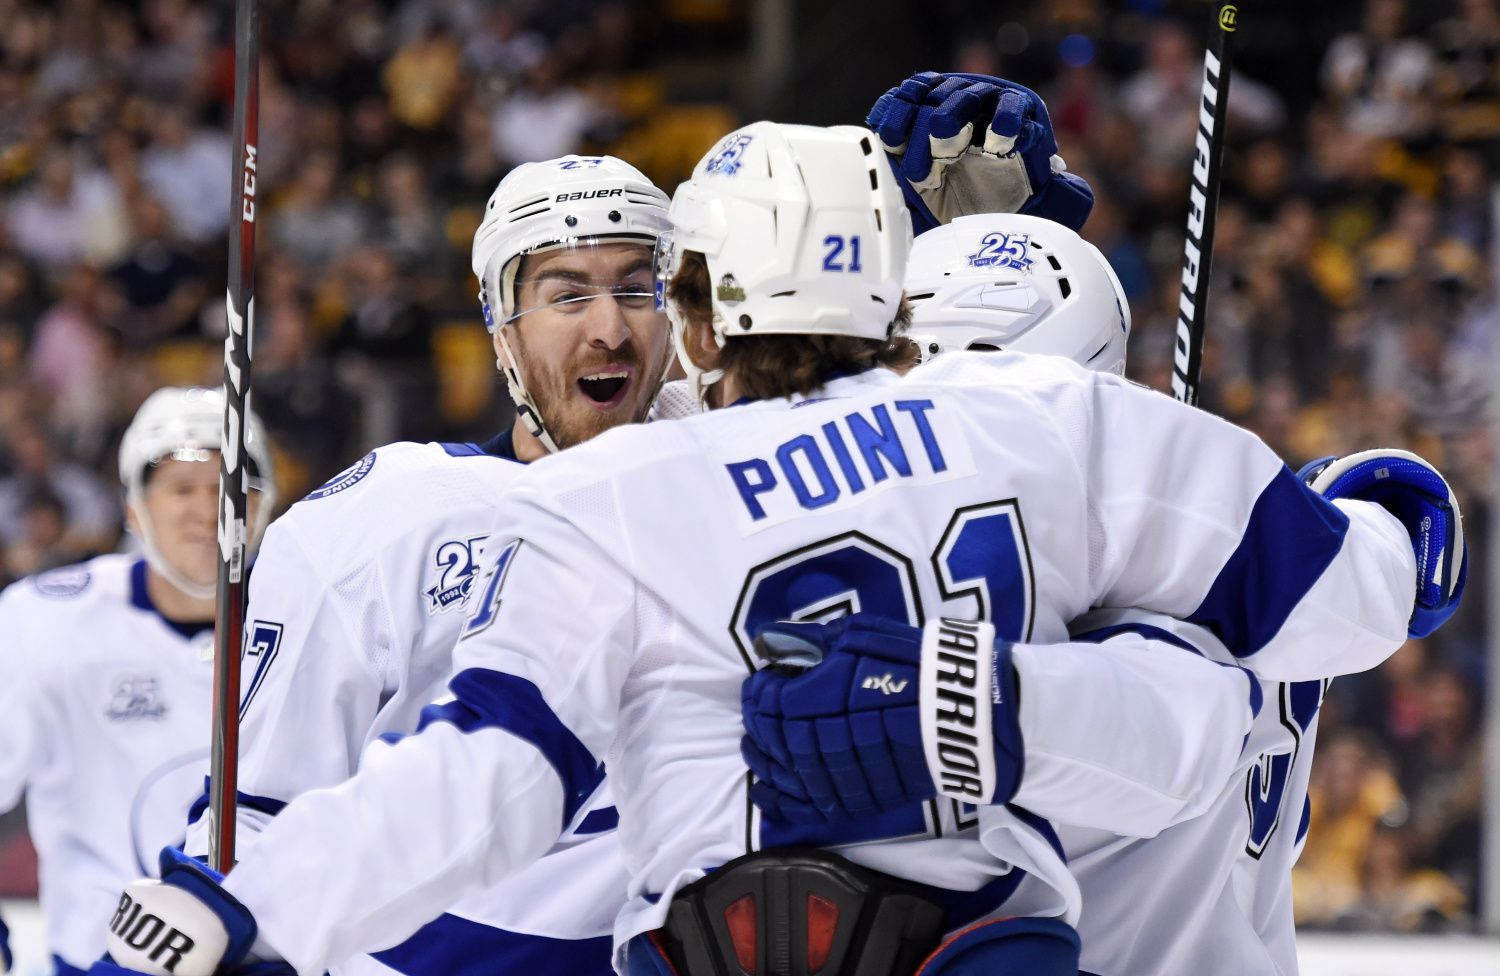 NHL 2017-18: Brayden Point (21) a Ryan McDonagh (27) - Toronto